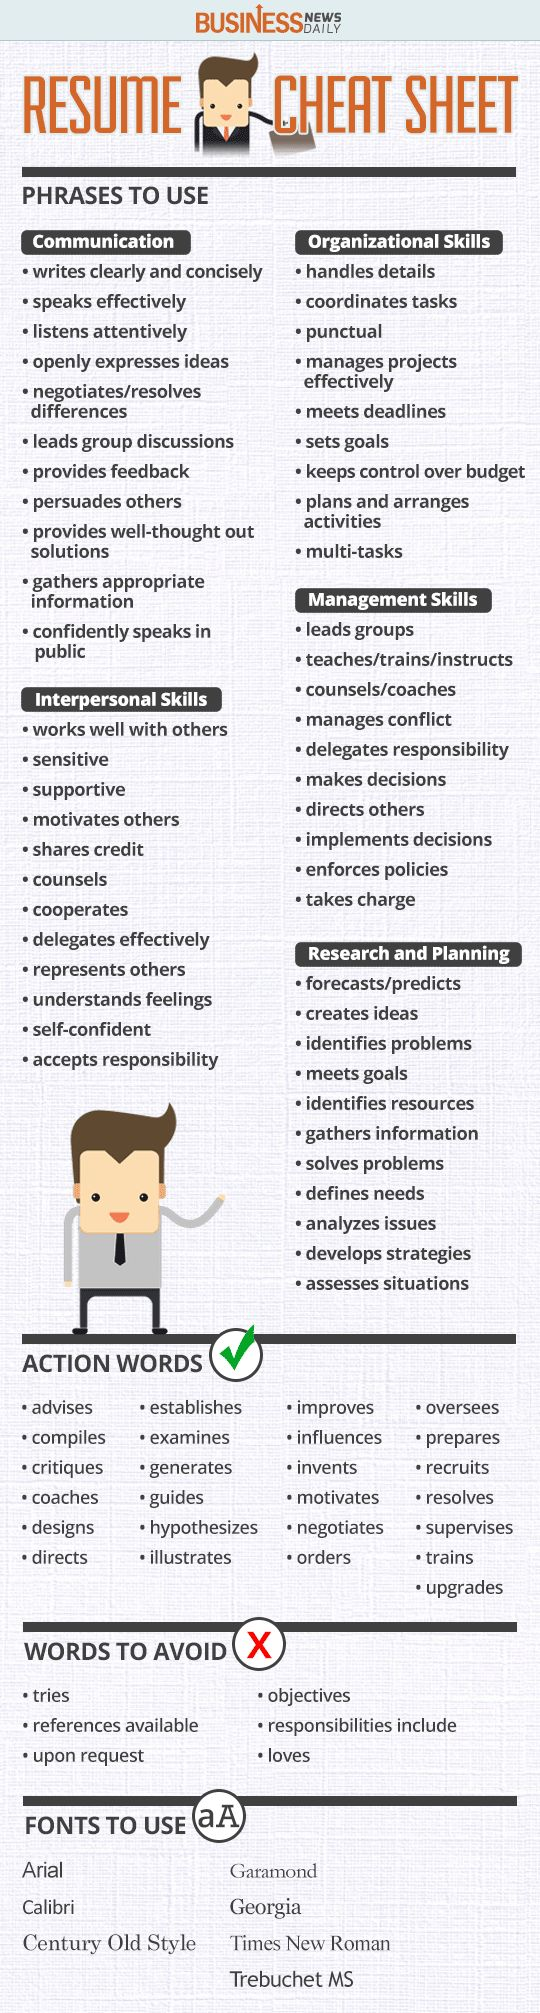 Opposenewapstandardsus  Marvellous  Ideas About Resume On Pinterest  Cv Format Resume Cv And  With Extraordinary Resume Cheat Sheet Infographic Andrews Almost Done With A Complete Unit On Employment Which With Adorable Laboratory Technician Resume Also What Should A Resume Cover Letter Look Like In Addition Medical Billing Resume Sample And College Professor Resume As Well As Simple Job Resume Additionally Resume Career Change From Pinterestcom With Opposenewapstandardsus  Extraordinary  Ideas About Resume On Pinterest  Cv Format Resume Cv And  With Adorable Resume Cheat Sheet Infographic Andrews Almost Done With A Complete Unit On Employment Which And Marvellous Laboratory Technician Resume Also What Should A Resume Cover Letter Look Like In Addition Medical Billing Resume Sample From Pinterestcom